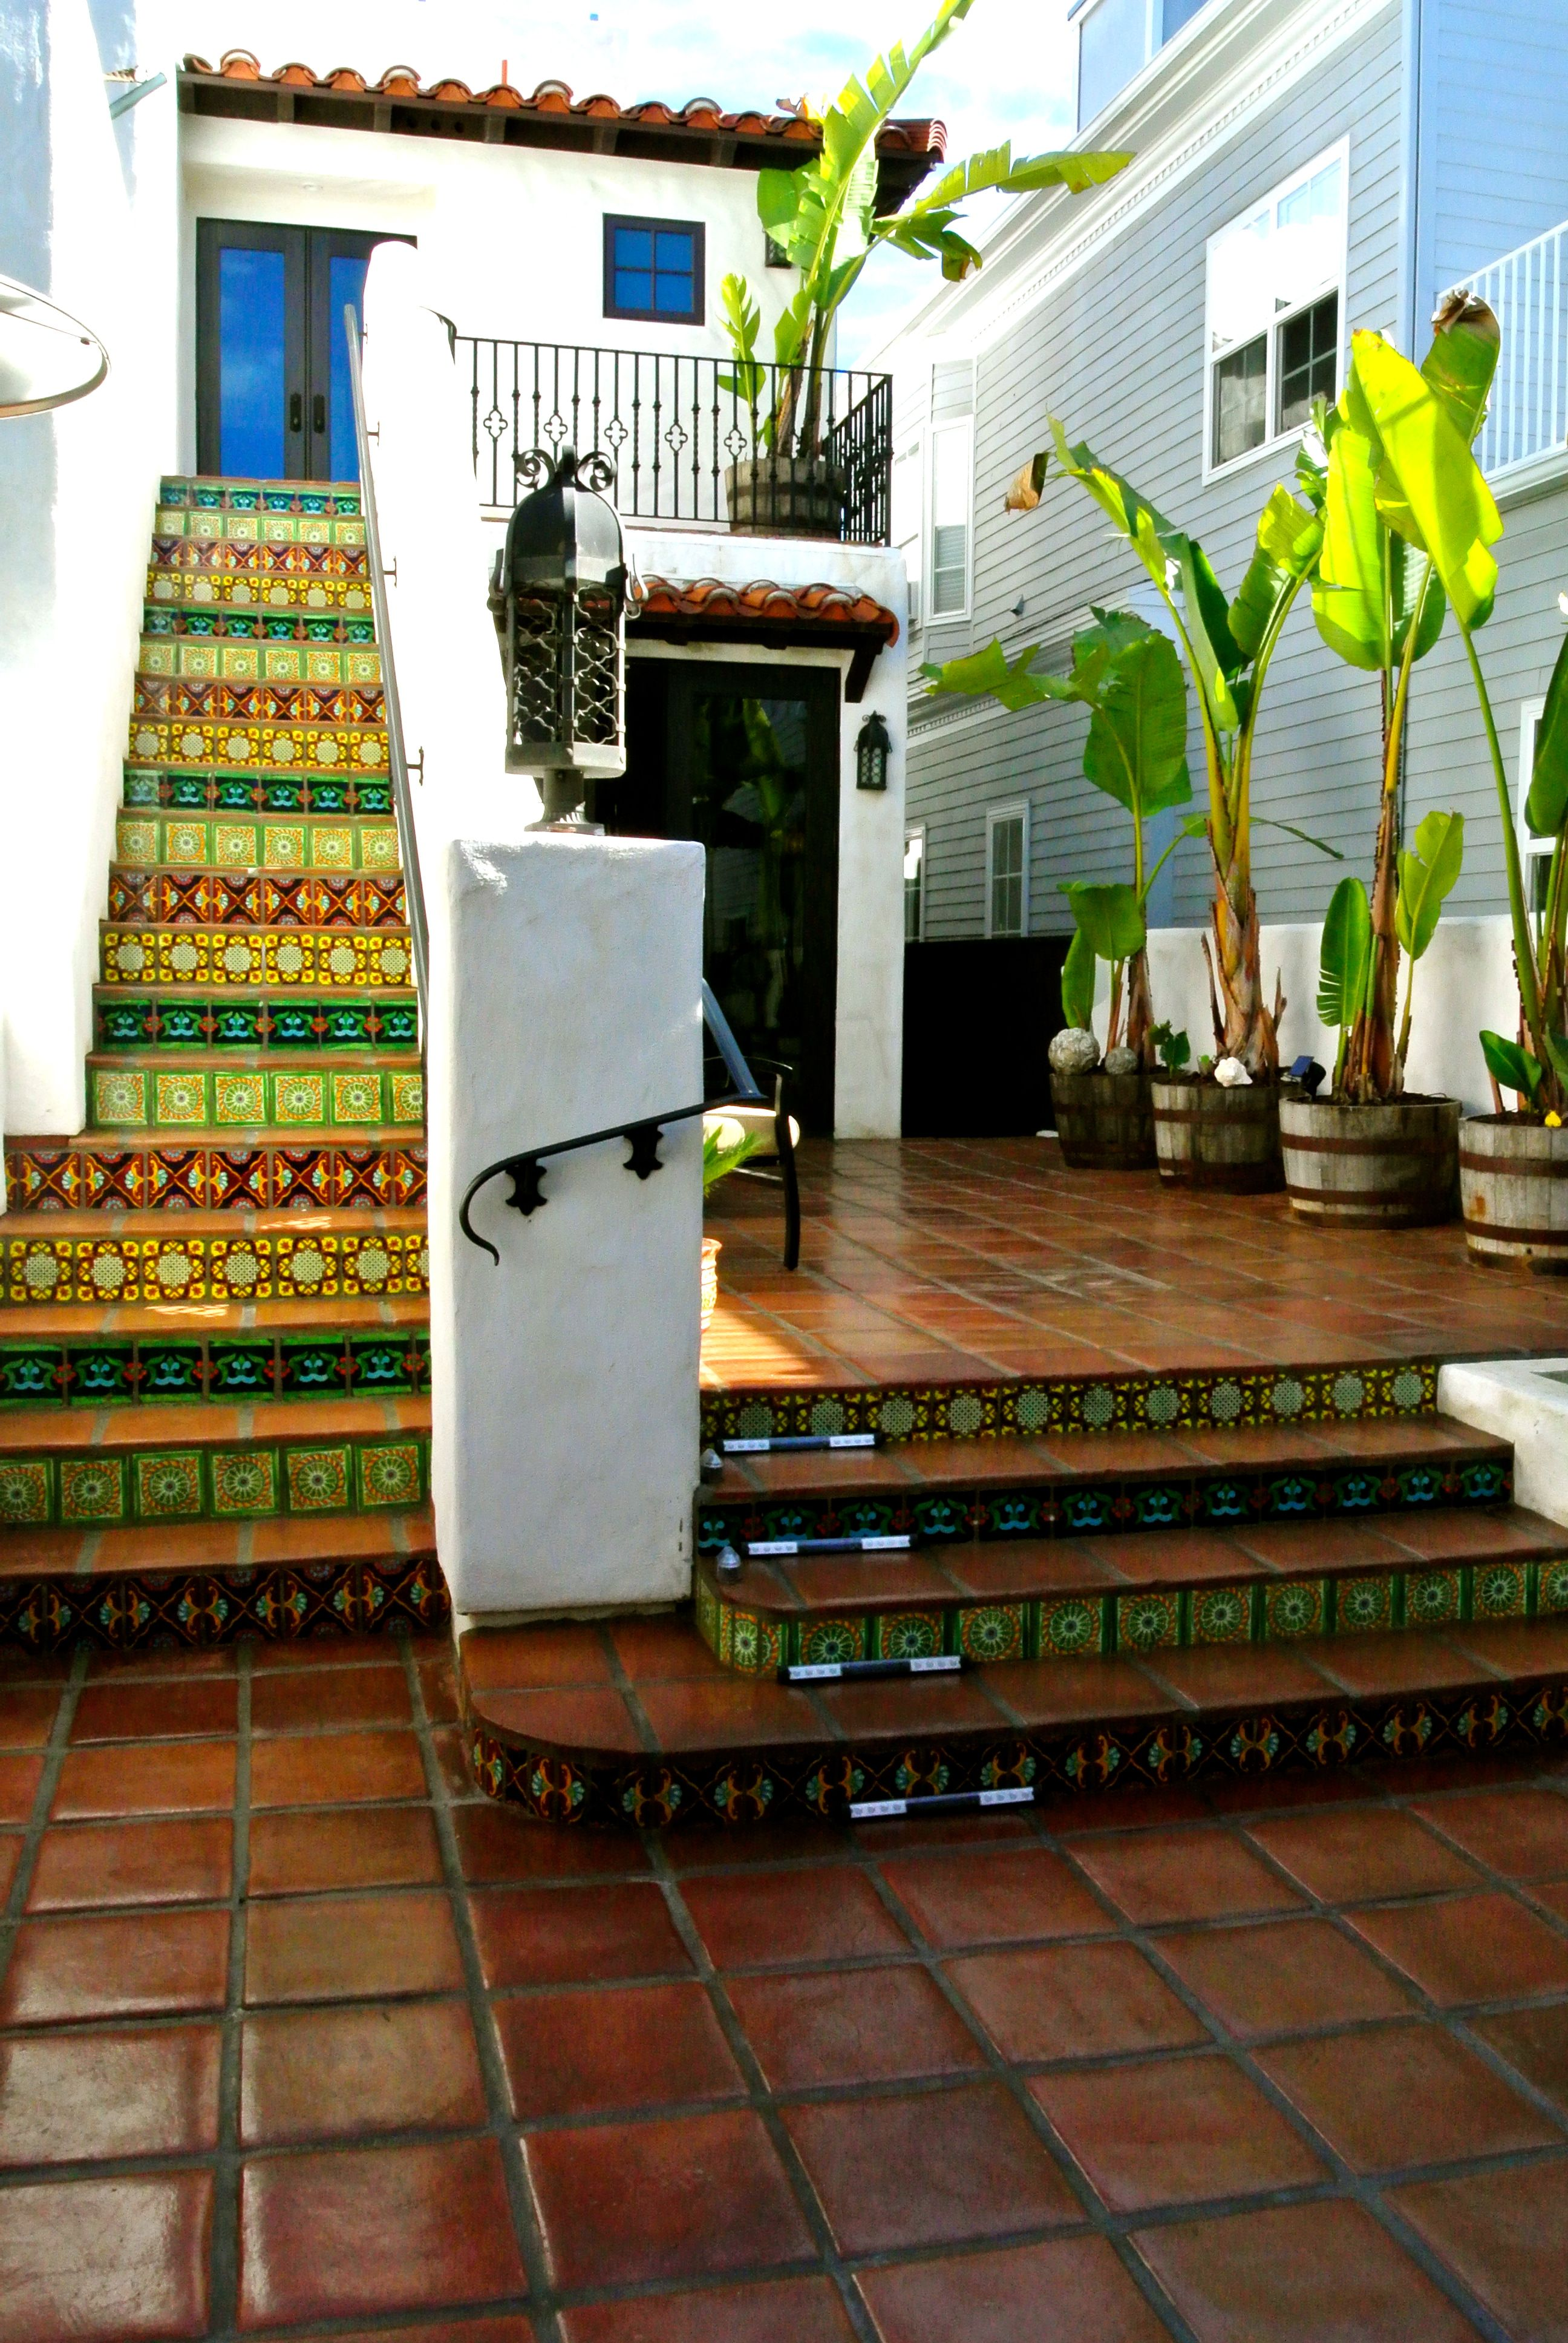 Decorative Patio Tiles Cool Patio Project With Hand Painted And Handcrafted Talavera Inspiration